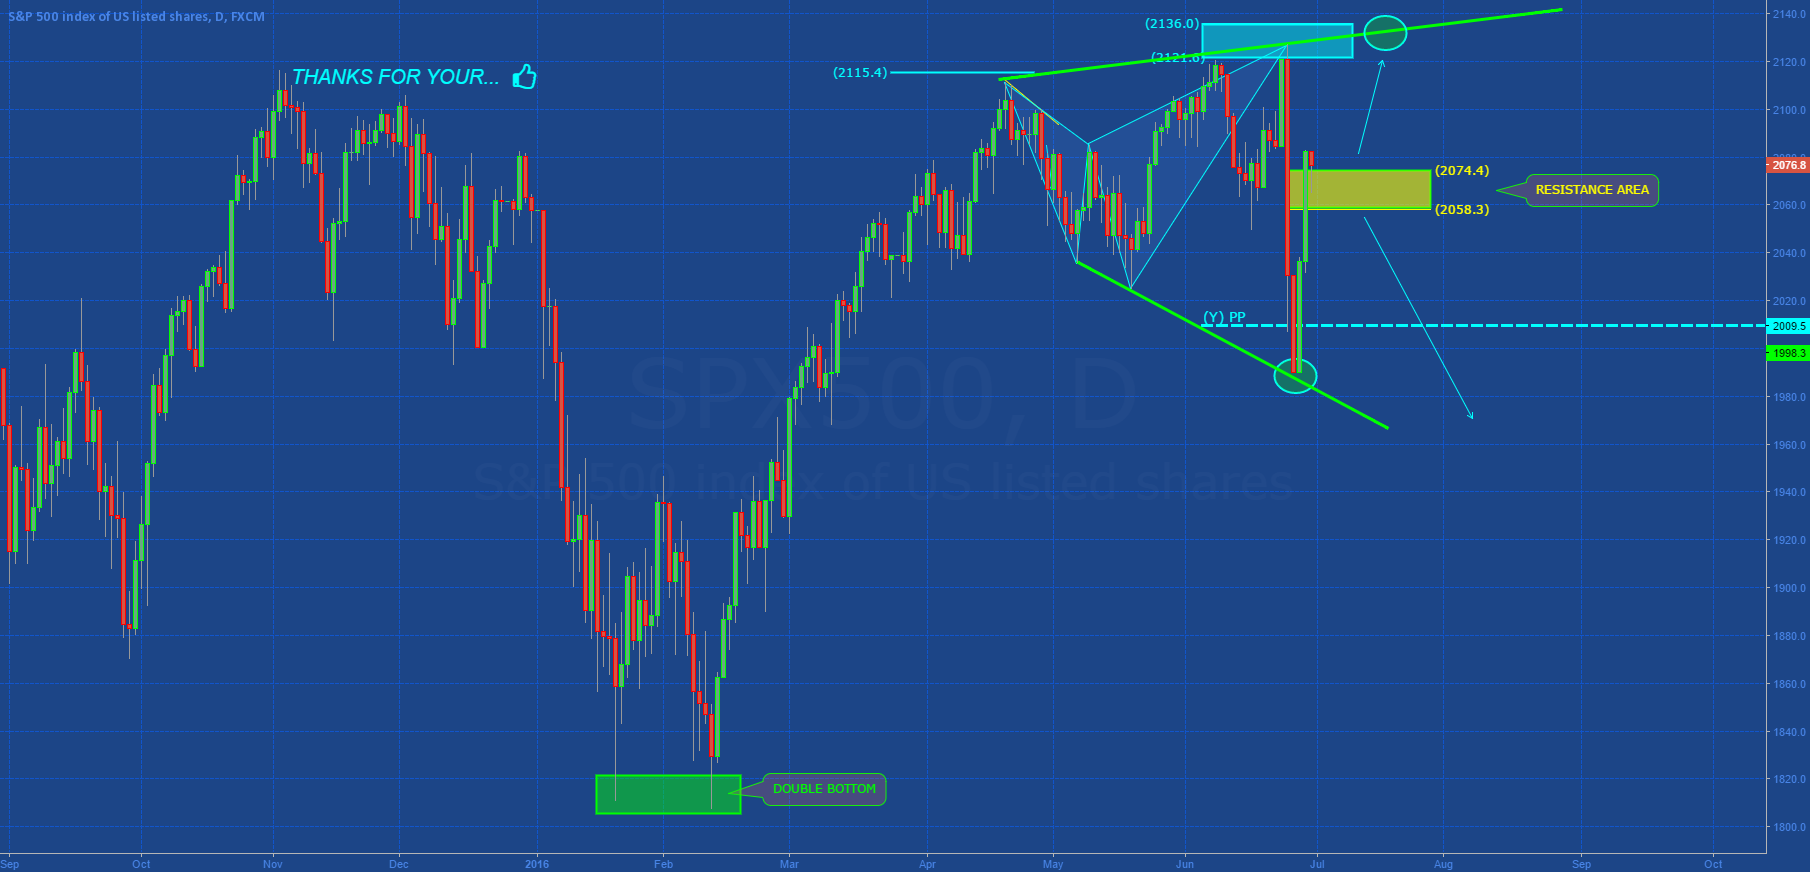 SP500: NEW HIGH FOR NEXT WEEK?